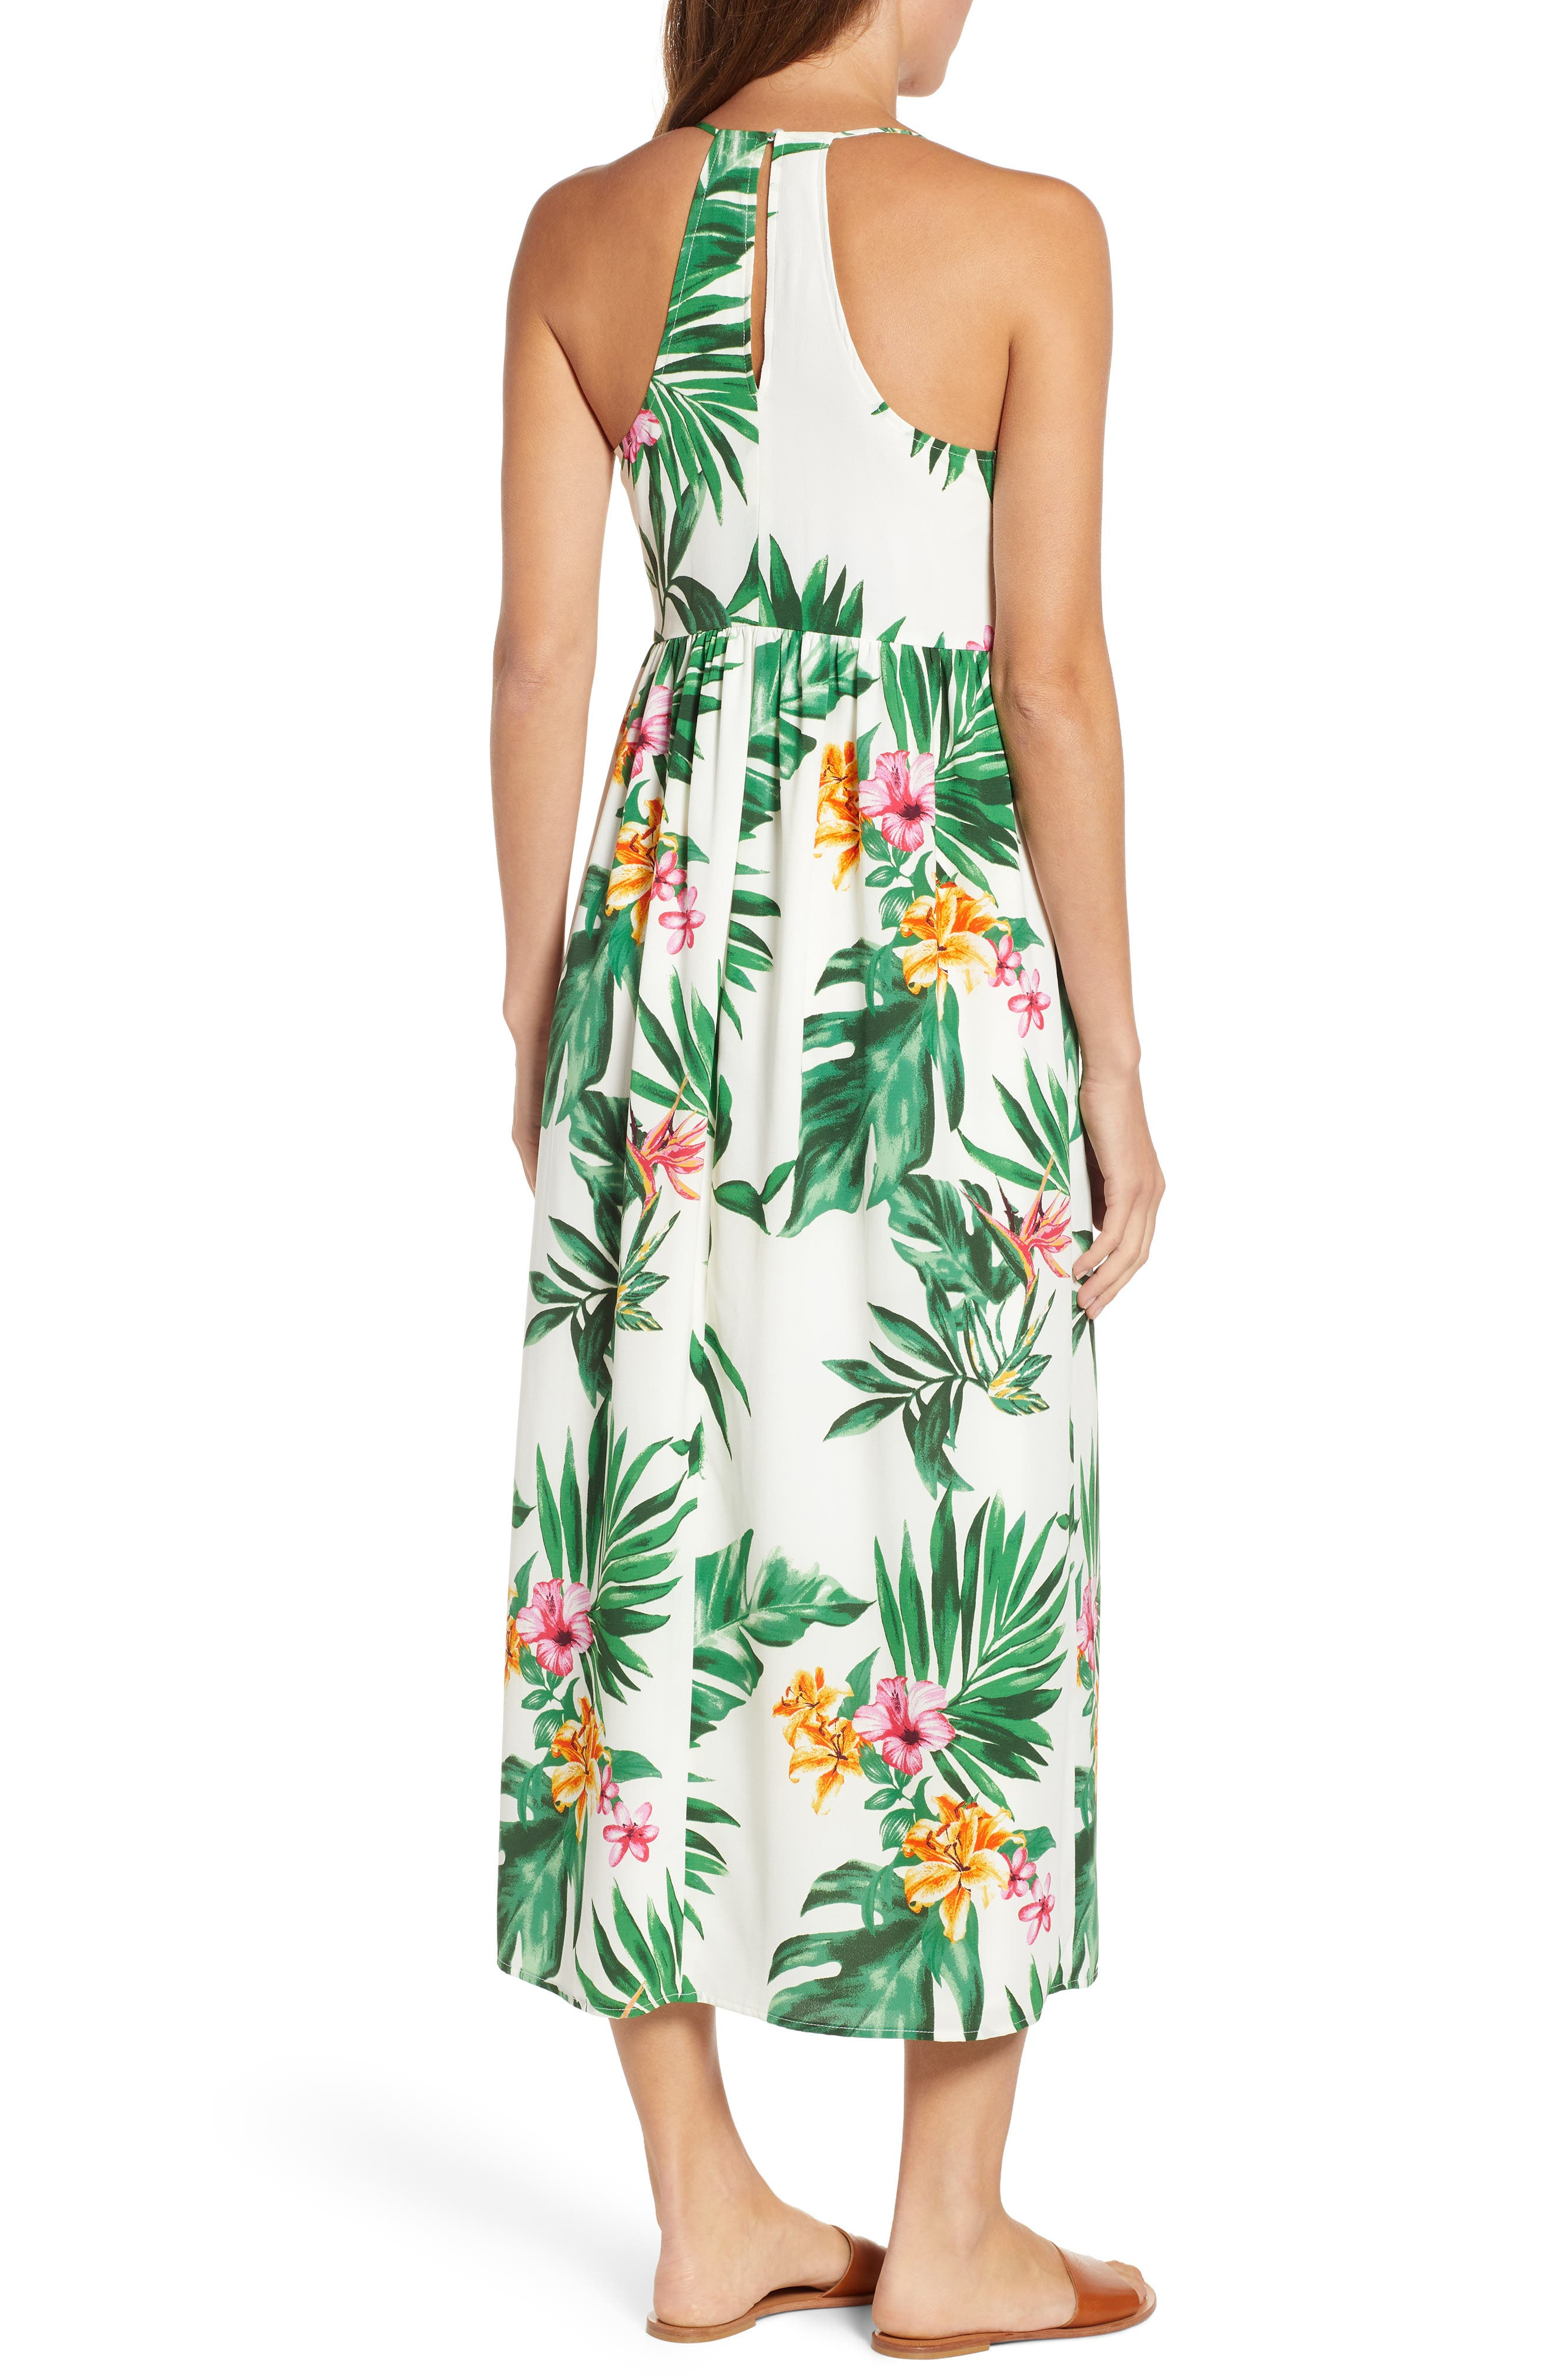 x Hi Sugarplum! Palm Springs Festival Maxi Dress,                             Alternate thumbnail 2, color,                             150